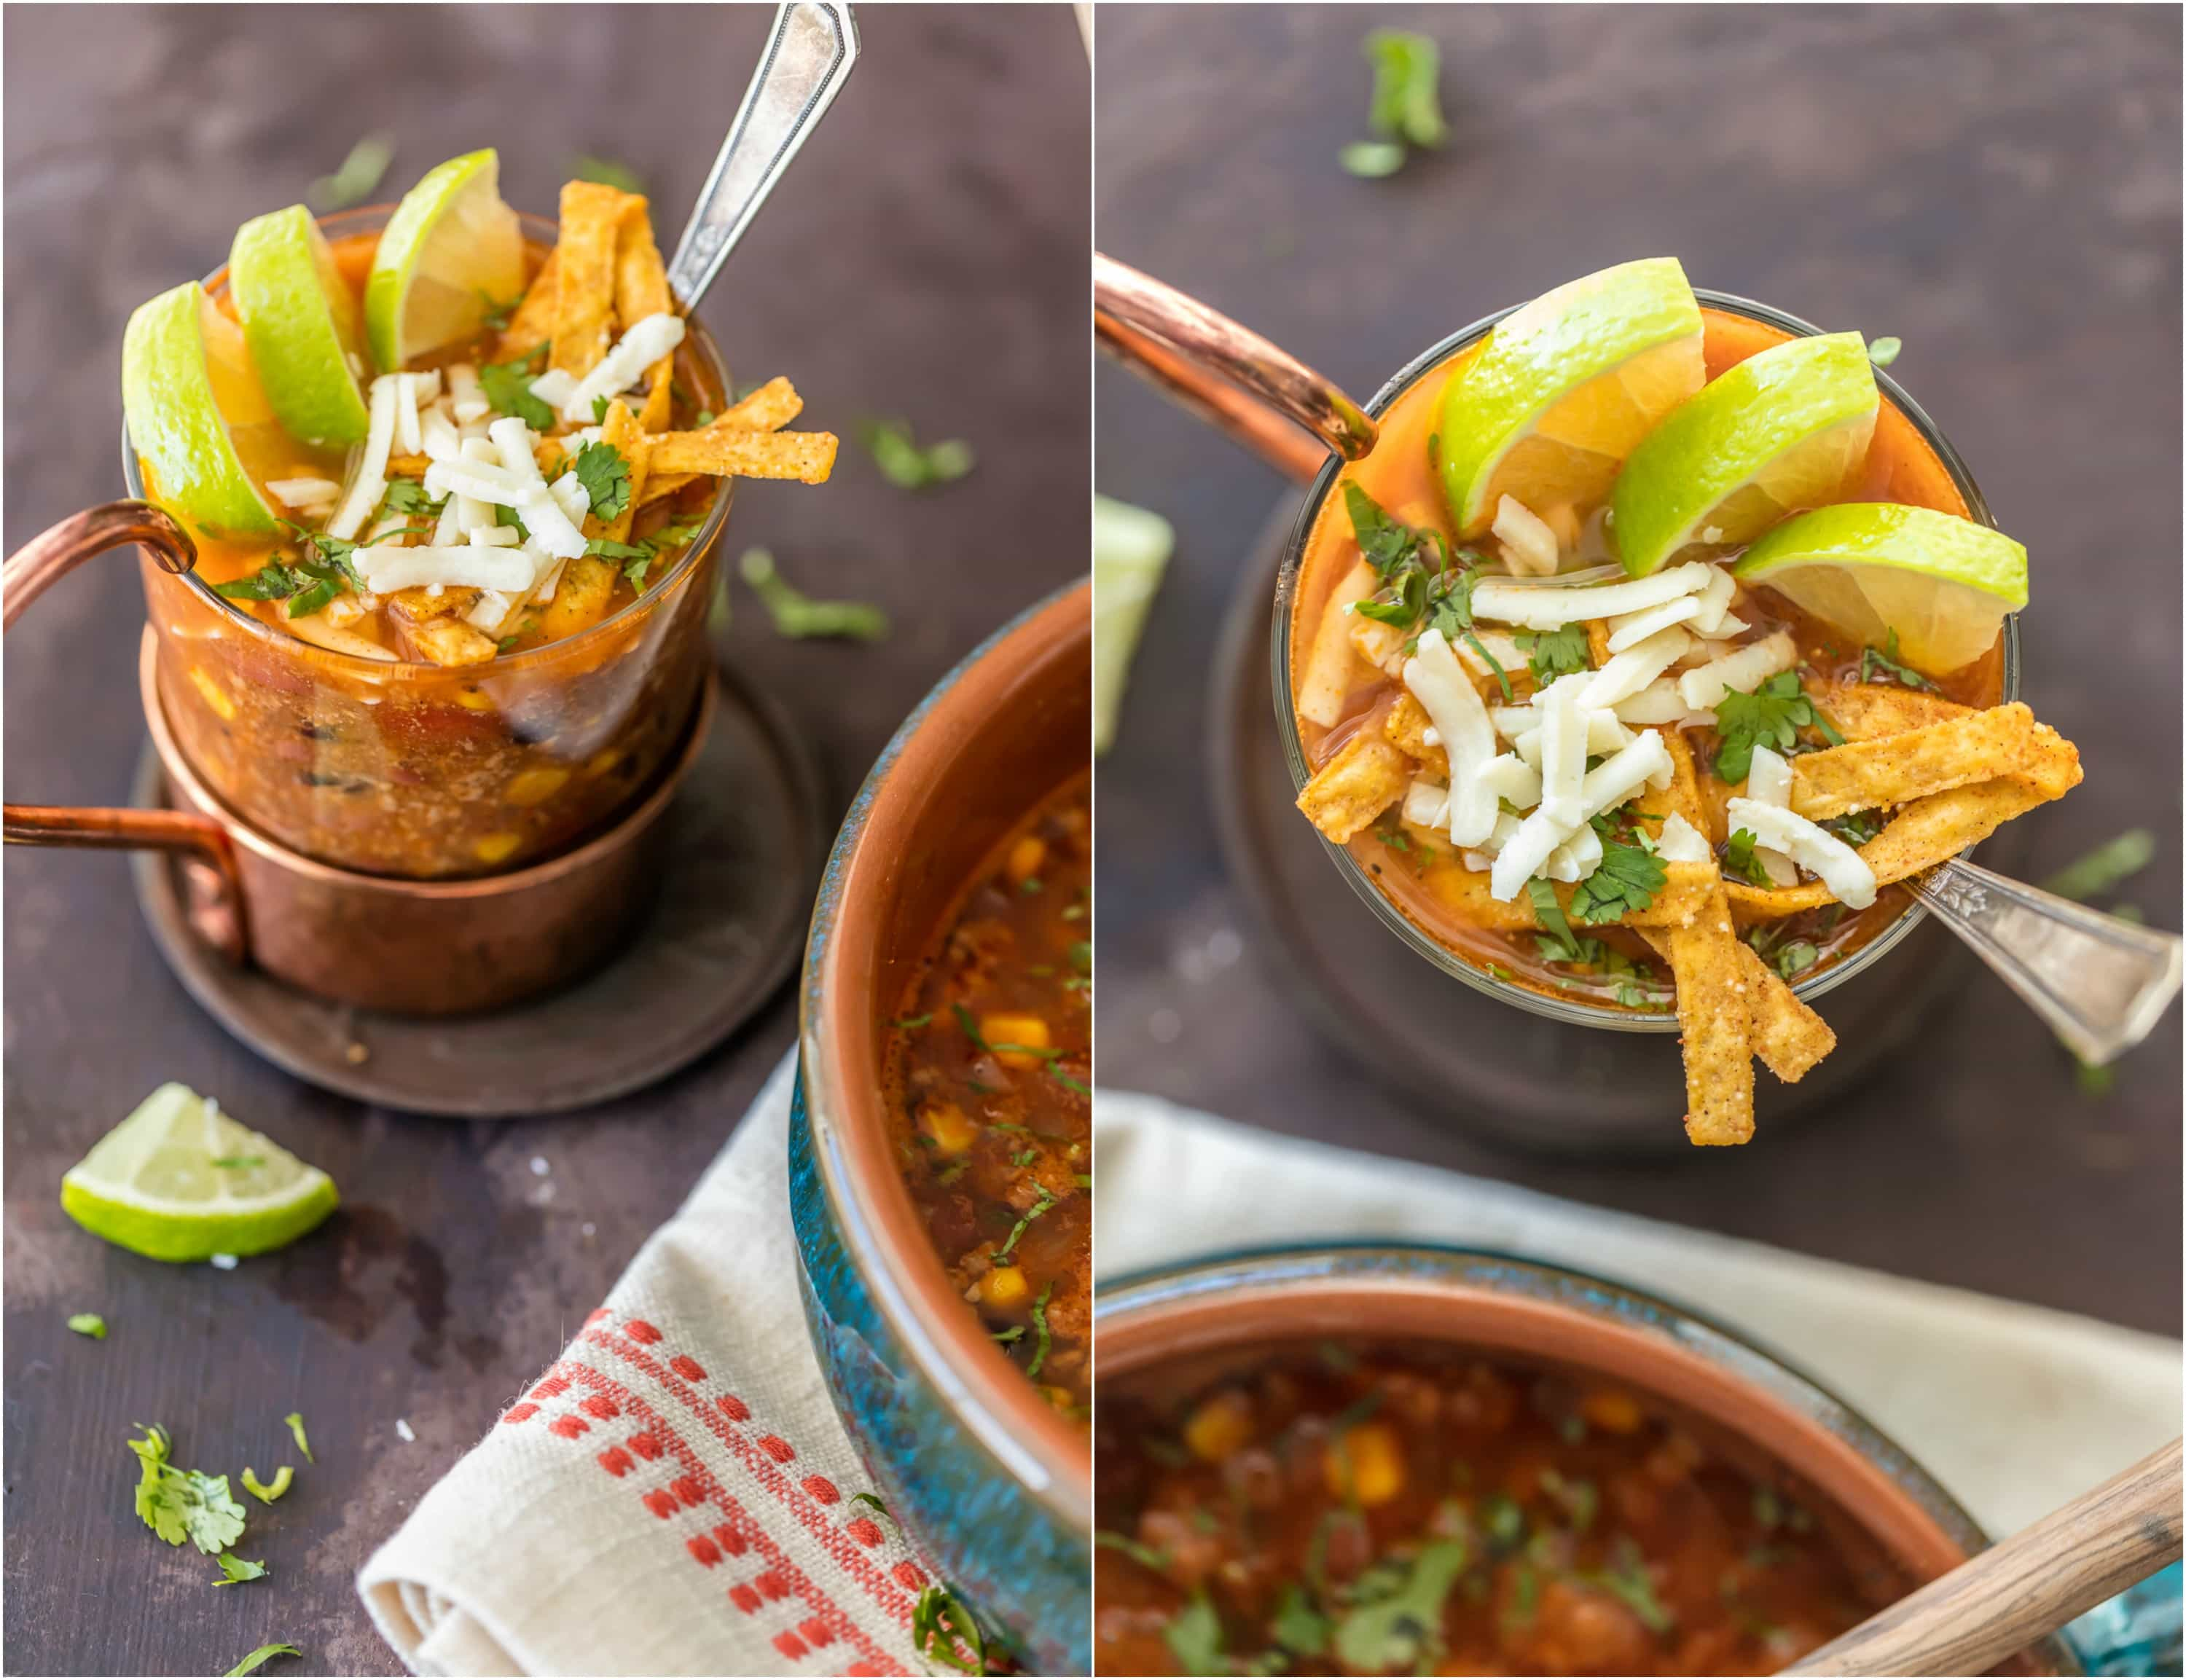 BEEF TORTILLA SOUP is such an easy and delicious comfort food! Loaded with spices, corn, tomatoes, and everything you'd expect from the perfect tortilla soup. Top with shredded cheese, tortilla strips, and all the fixings for the ultimate easy Winter meal!